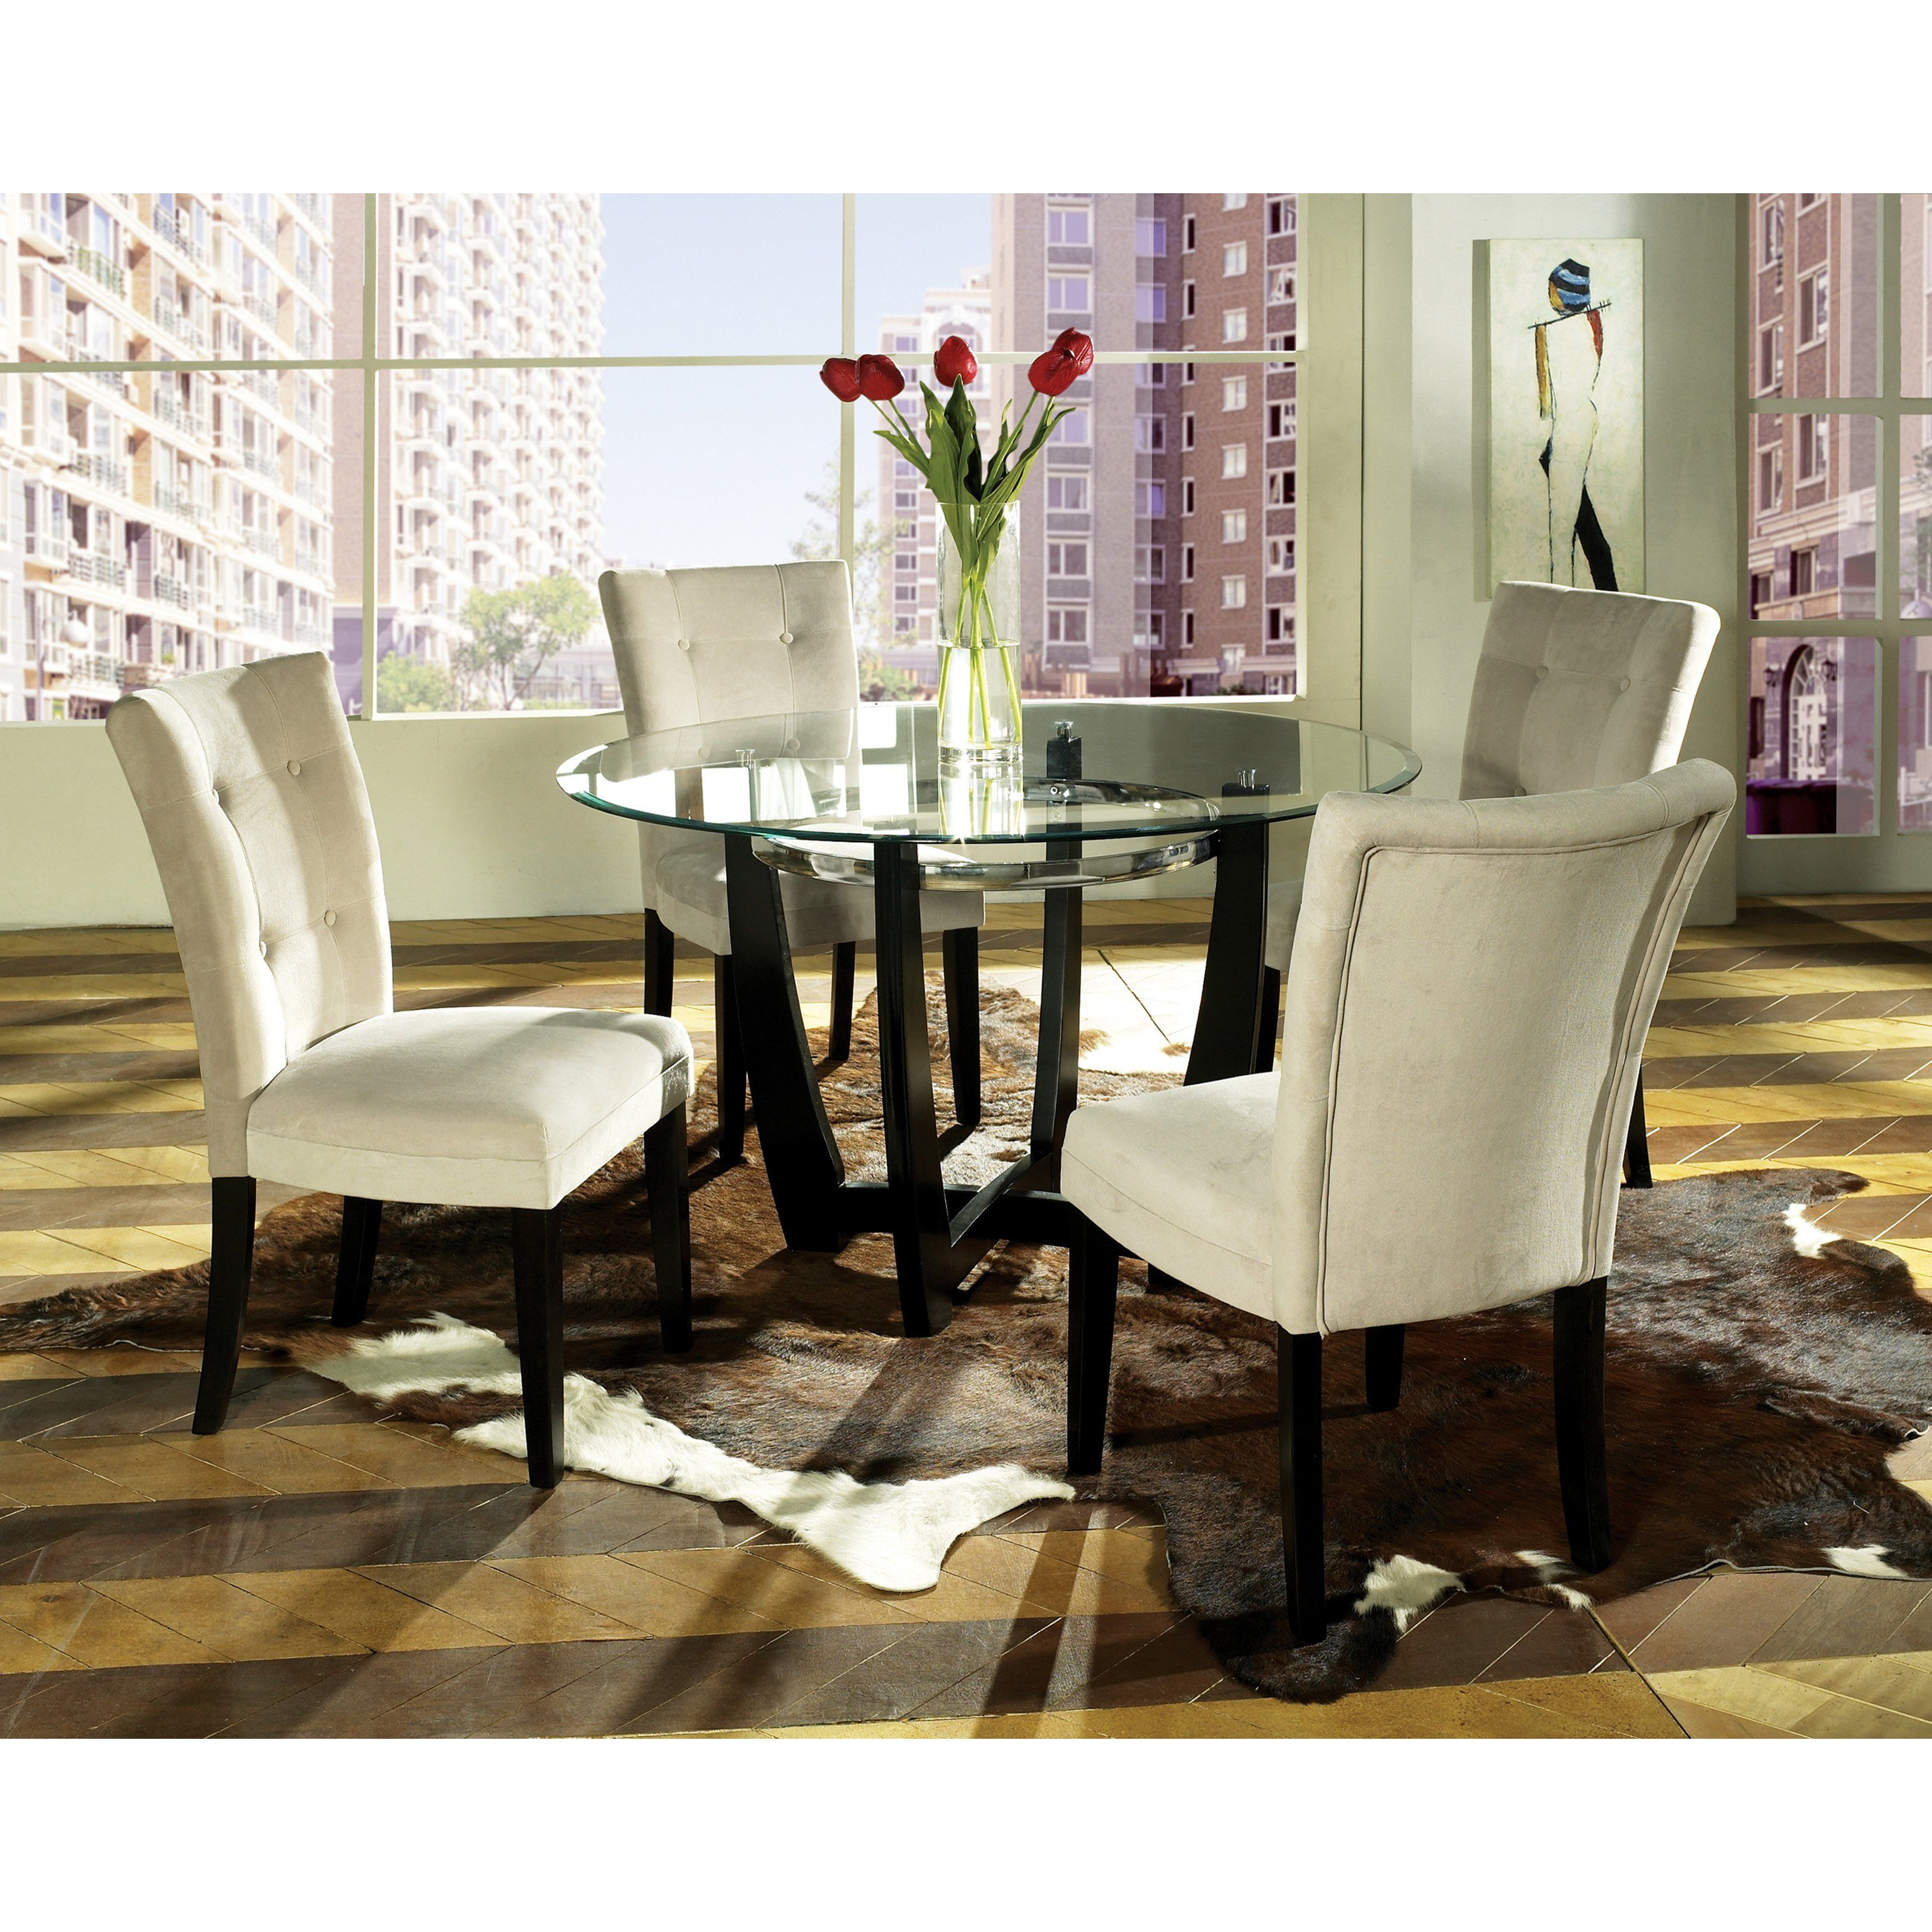 Steve Silver Matinee 5 Piece Glass Dining Table Set   Contemporary Design  Gets A Little Cozy